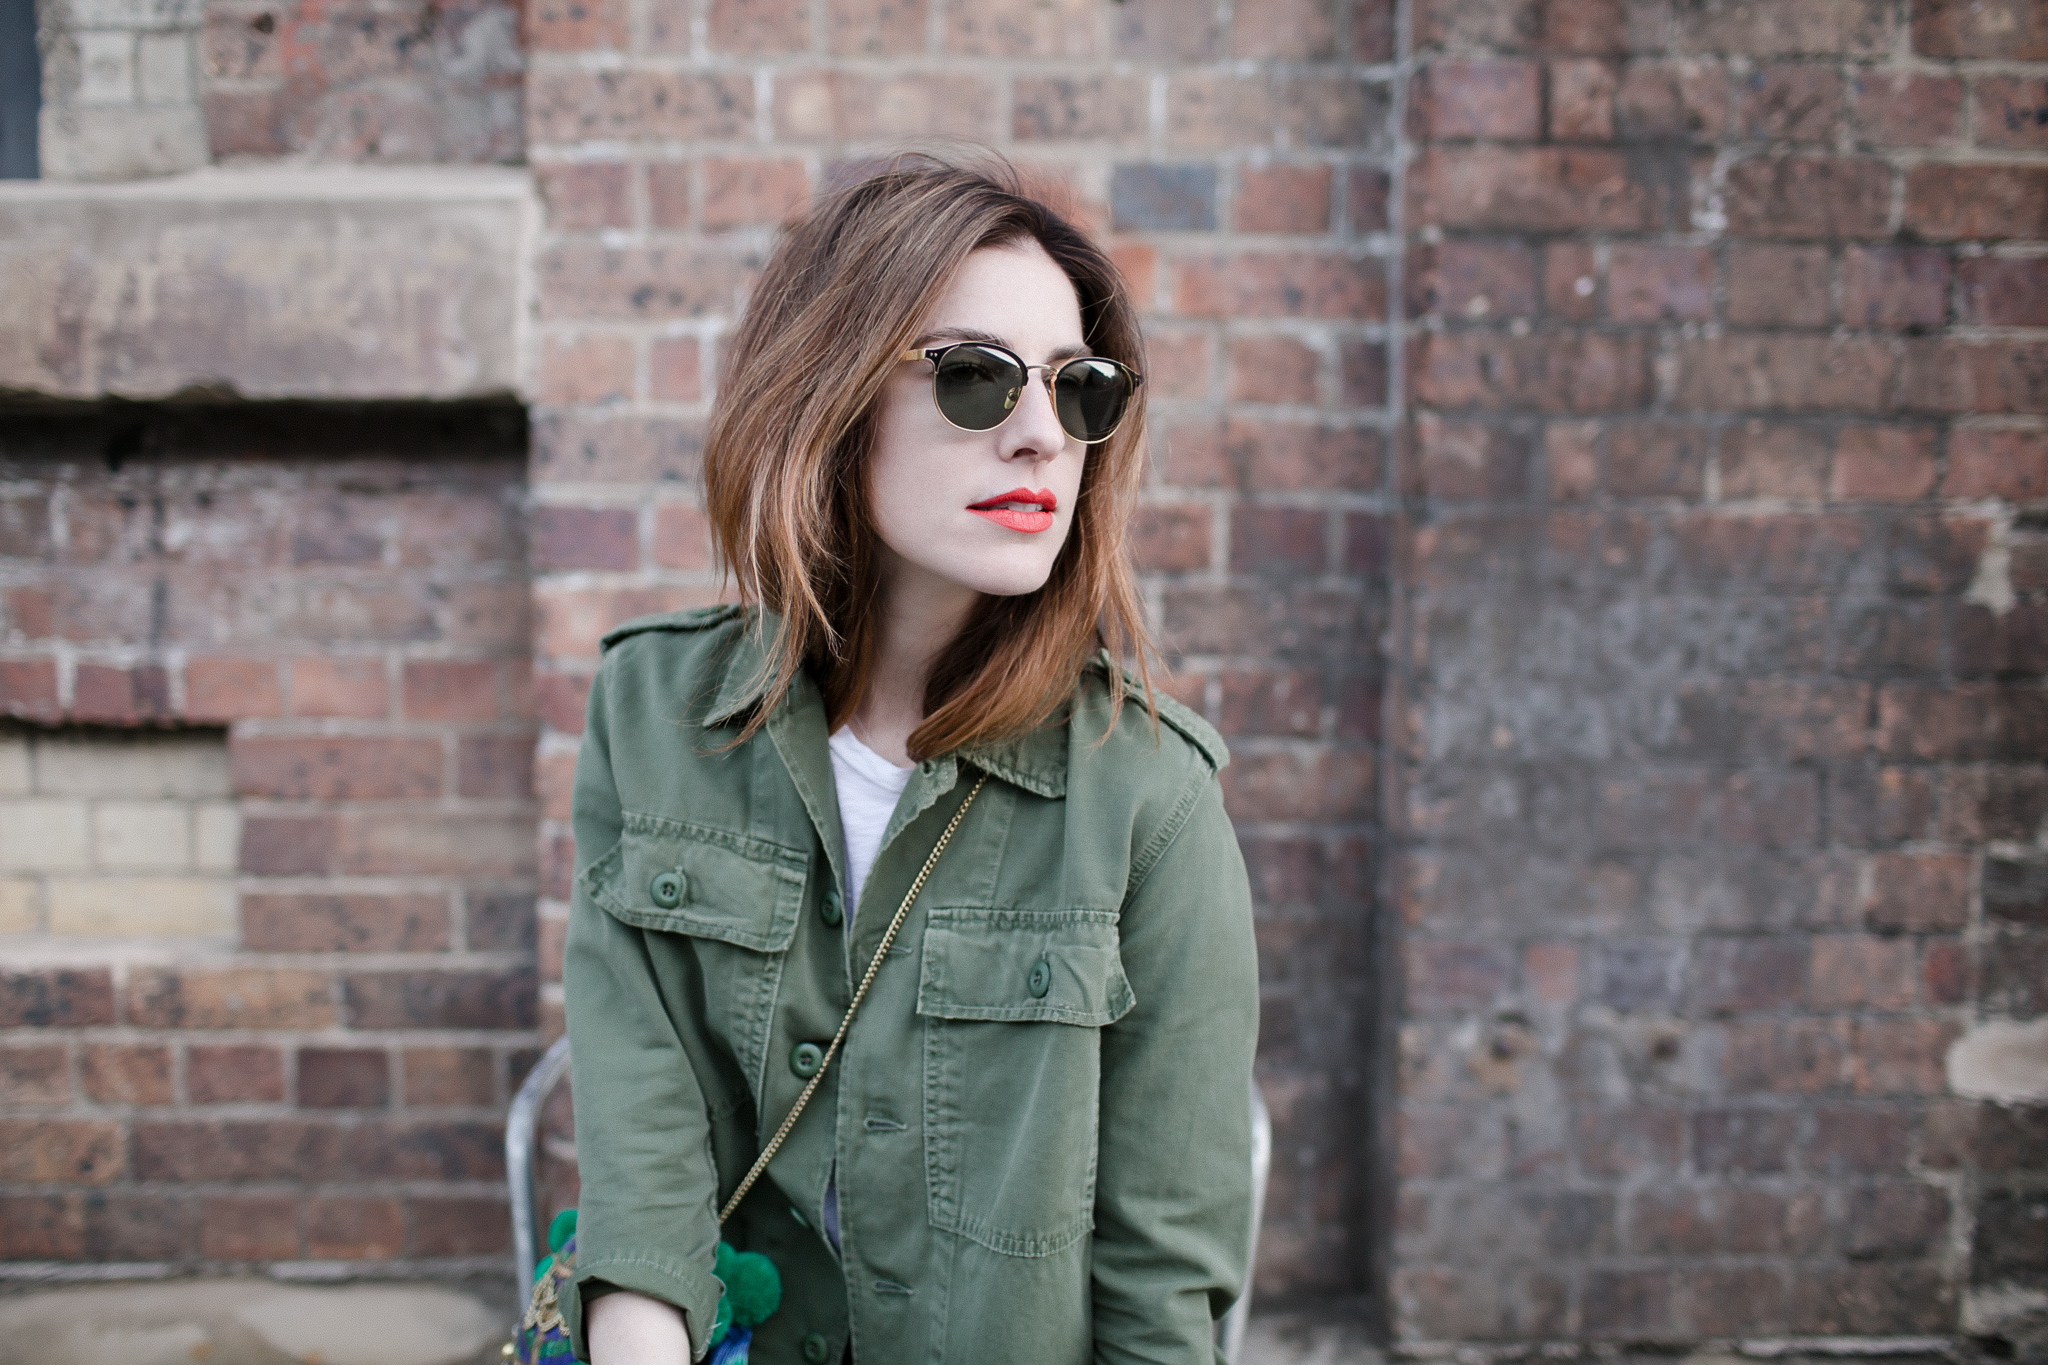 anna_e_cottrell_eldridge_edit_tulip_louise_fashion_blogger_australia_mercedes_benz_fashion_week_sydney_mallory_berry_mgb_photo_amo_army_green_outfit_redhead_leisure_society_sunglasses_orange_lip_love_binetti_handbag_9.jpg